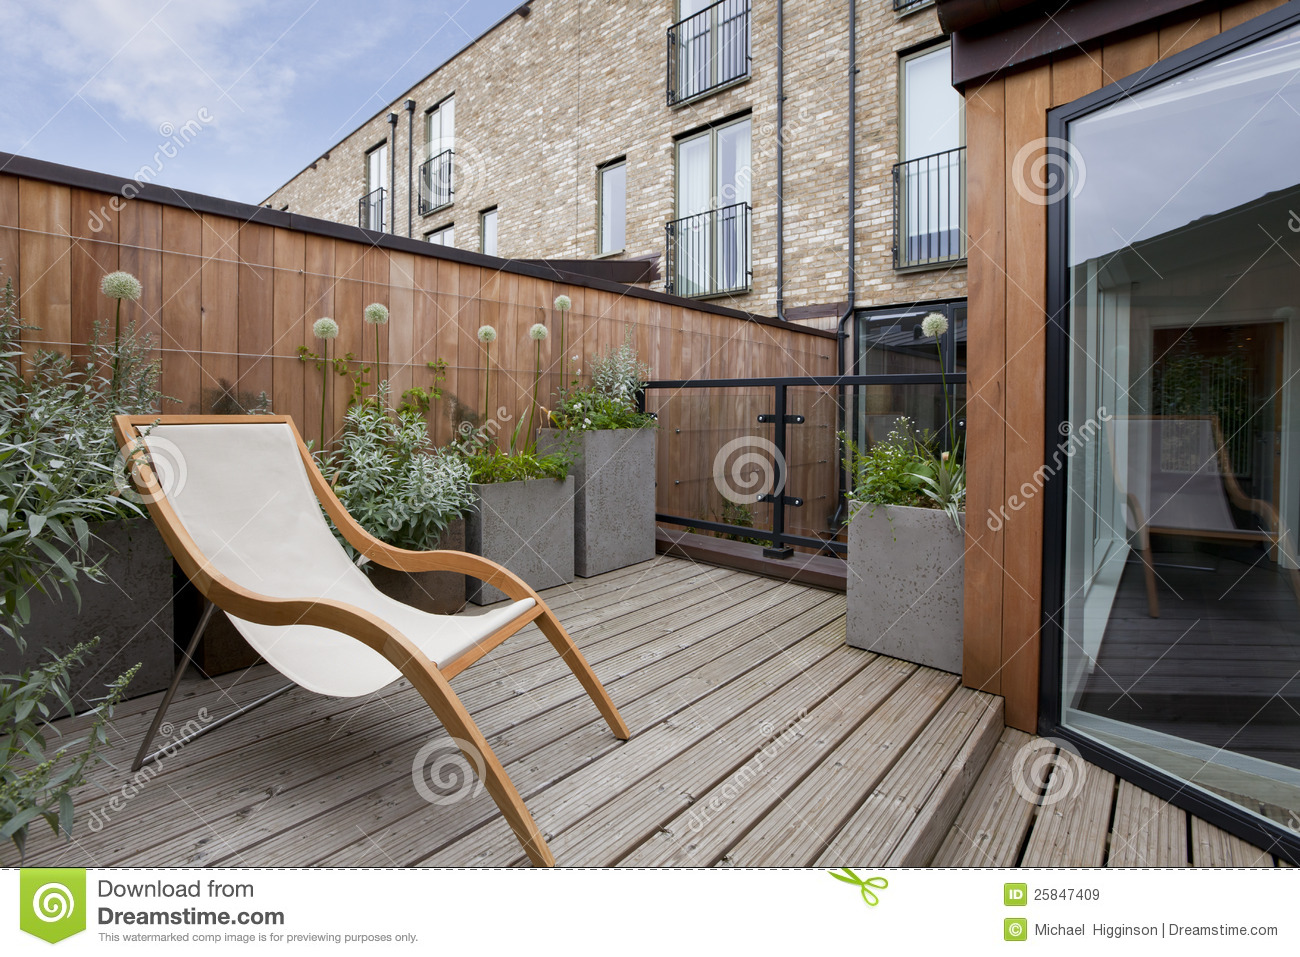 Urban balcony garden royalty free stock images image for Jardin urbain cormontreuil